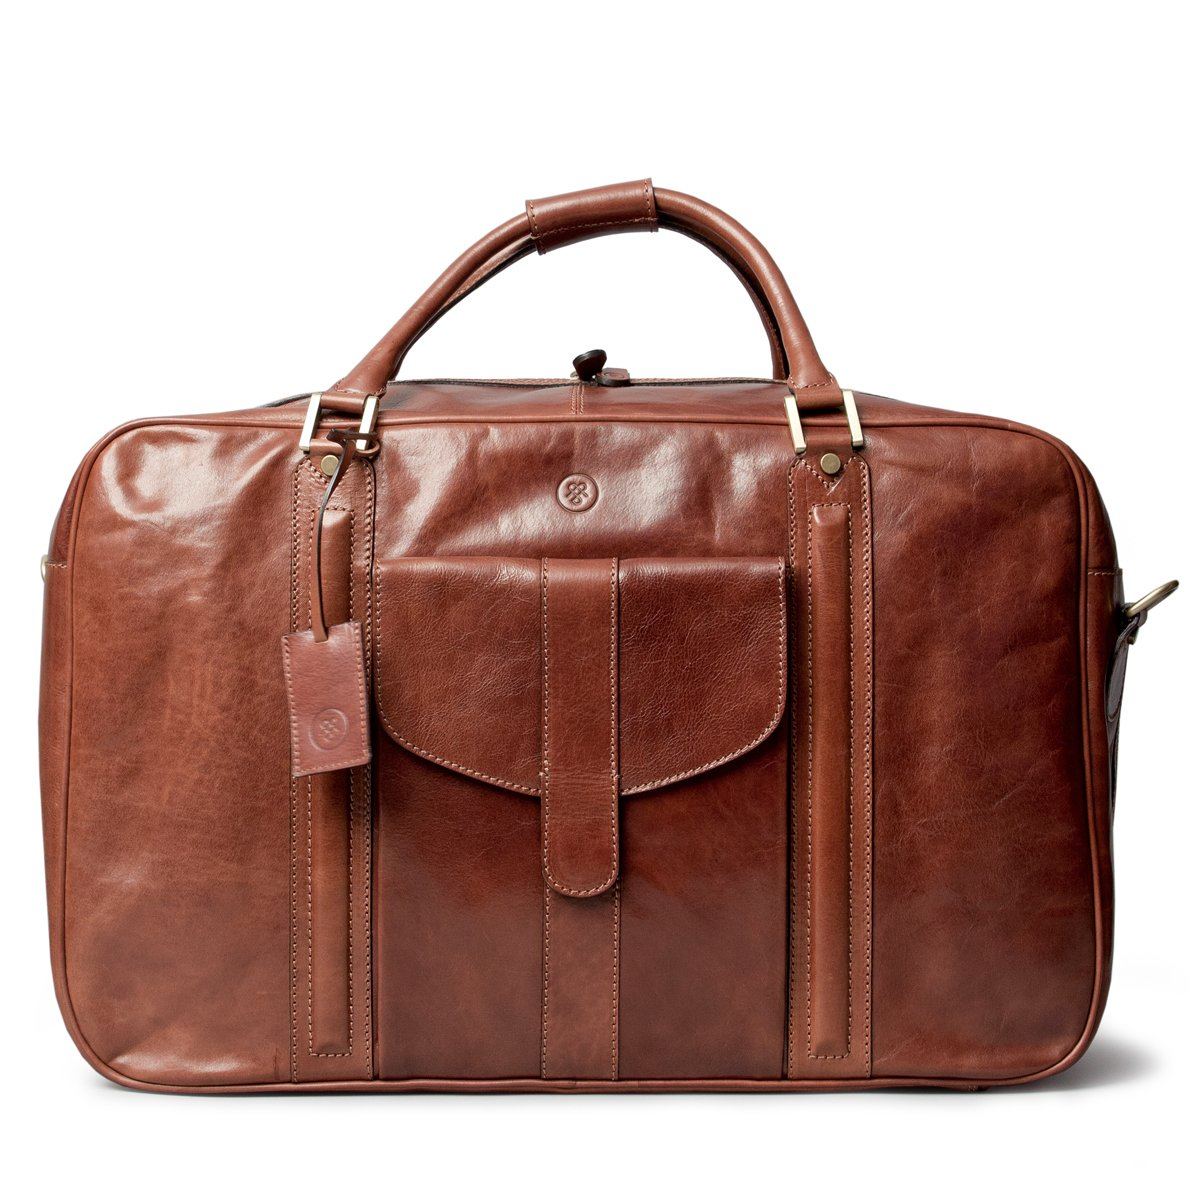 Maxwell Scott Luxury Tan Leather Suitcase Bag for Men (The Maurizio)